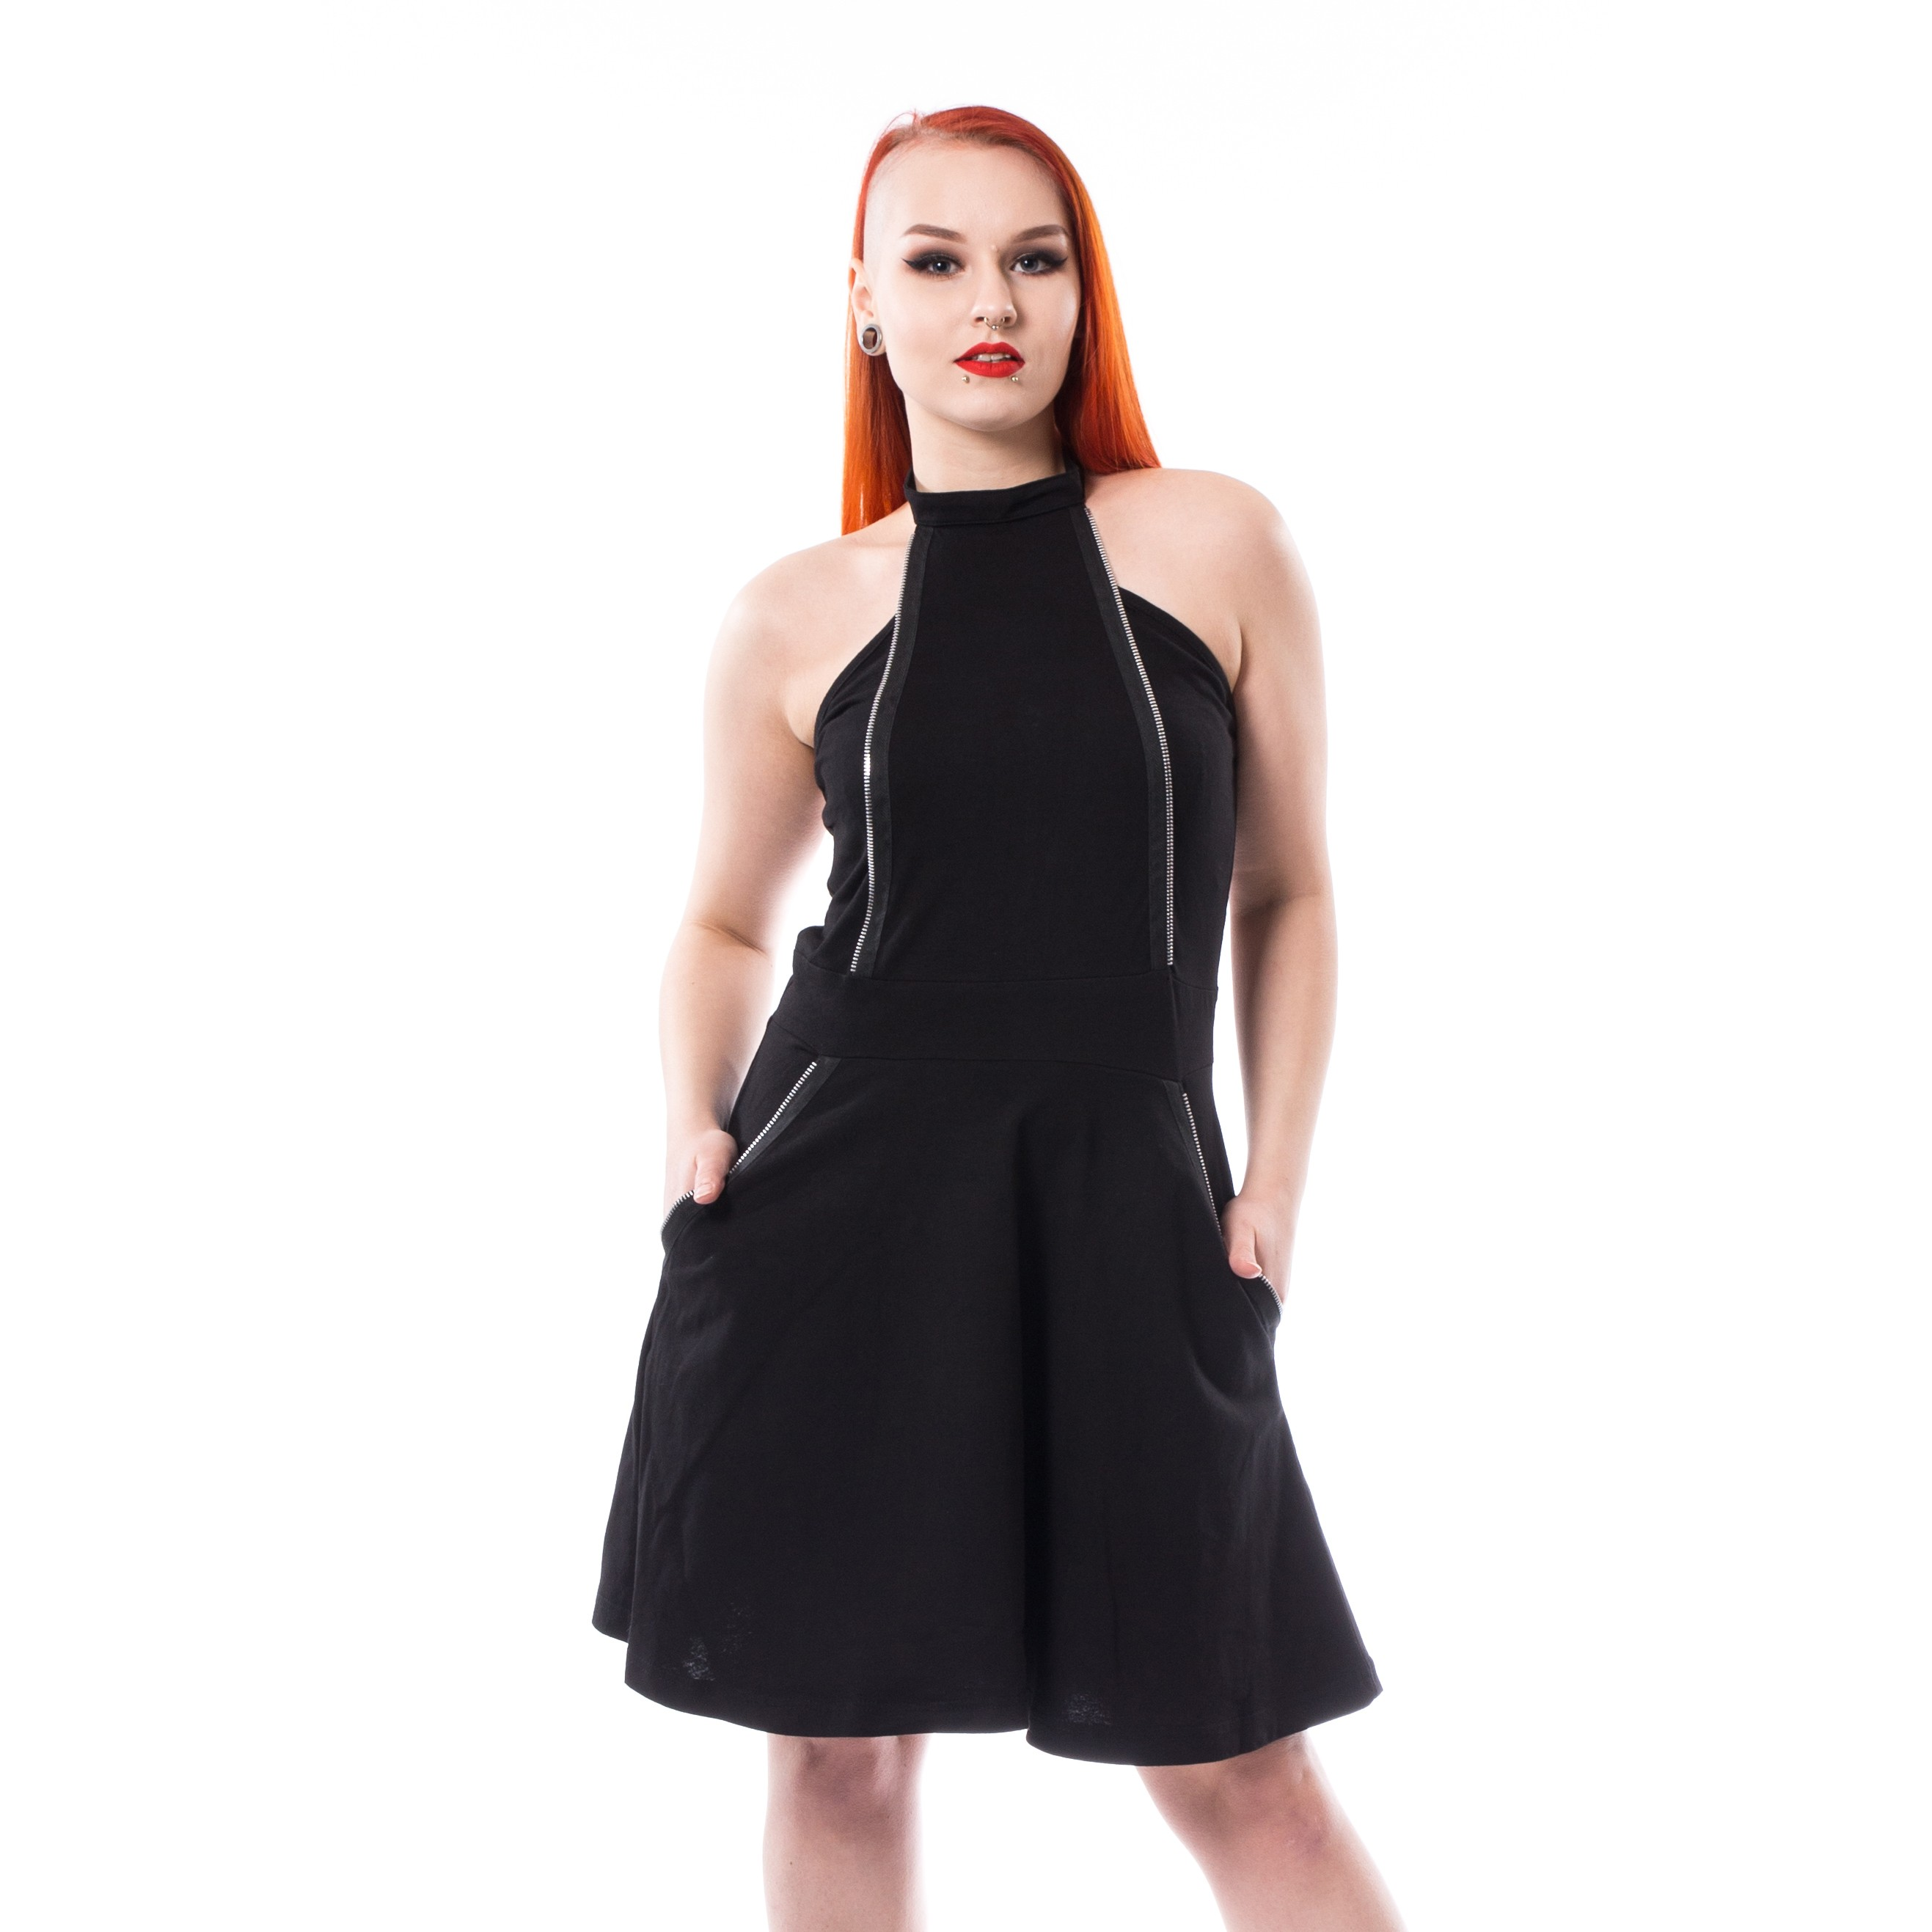 HEARTLESS - Hedvig Dress Ladies Black *NEW IN-a*